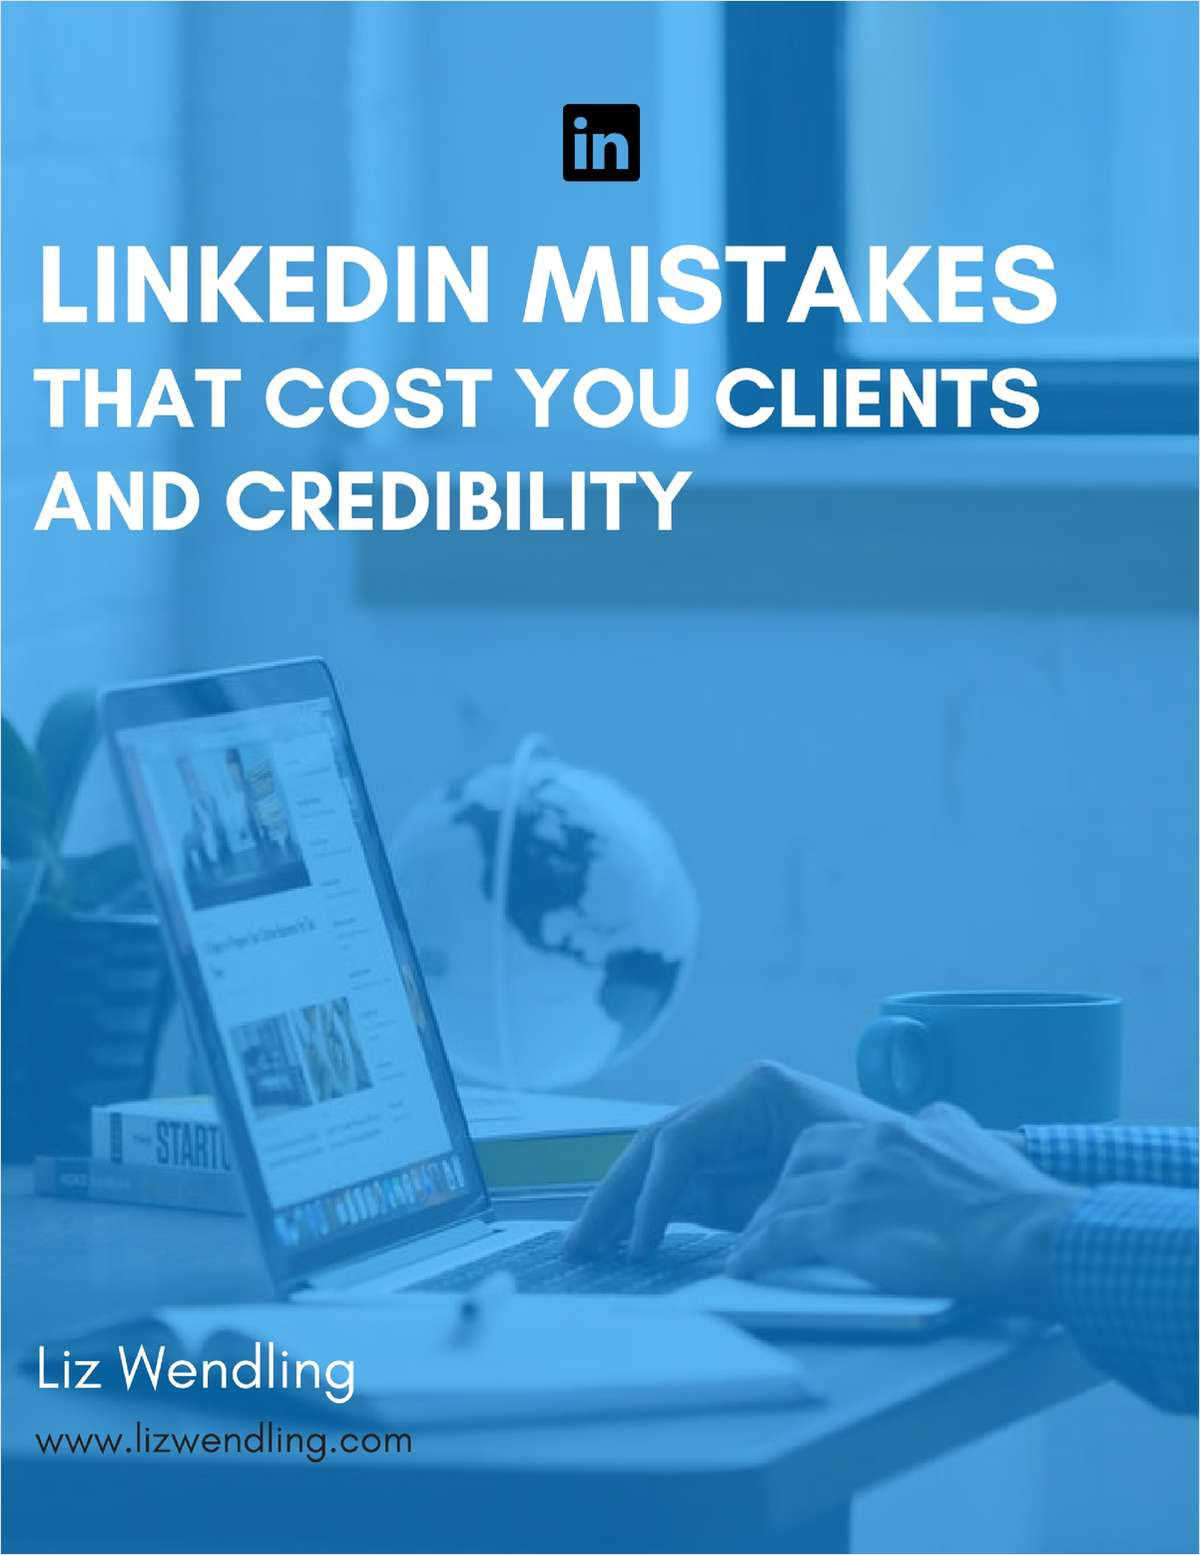 LinkedIn Mistakes that Cost You Clients and Credibility